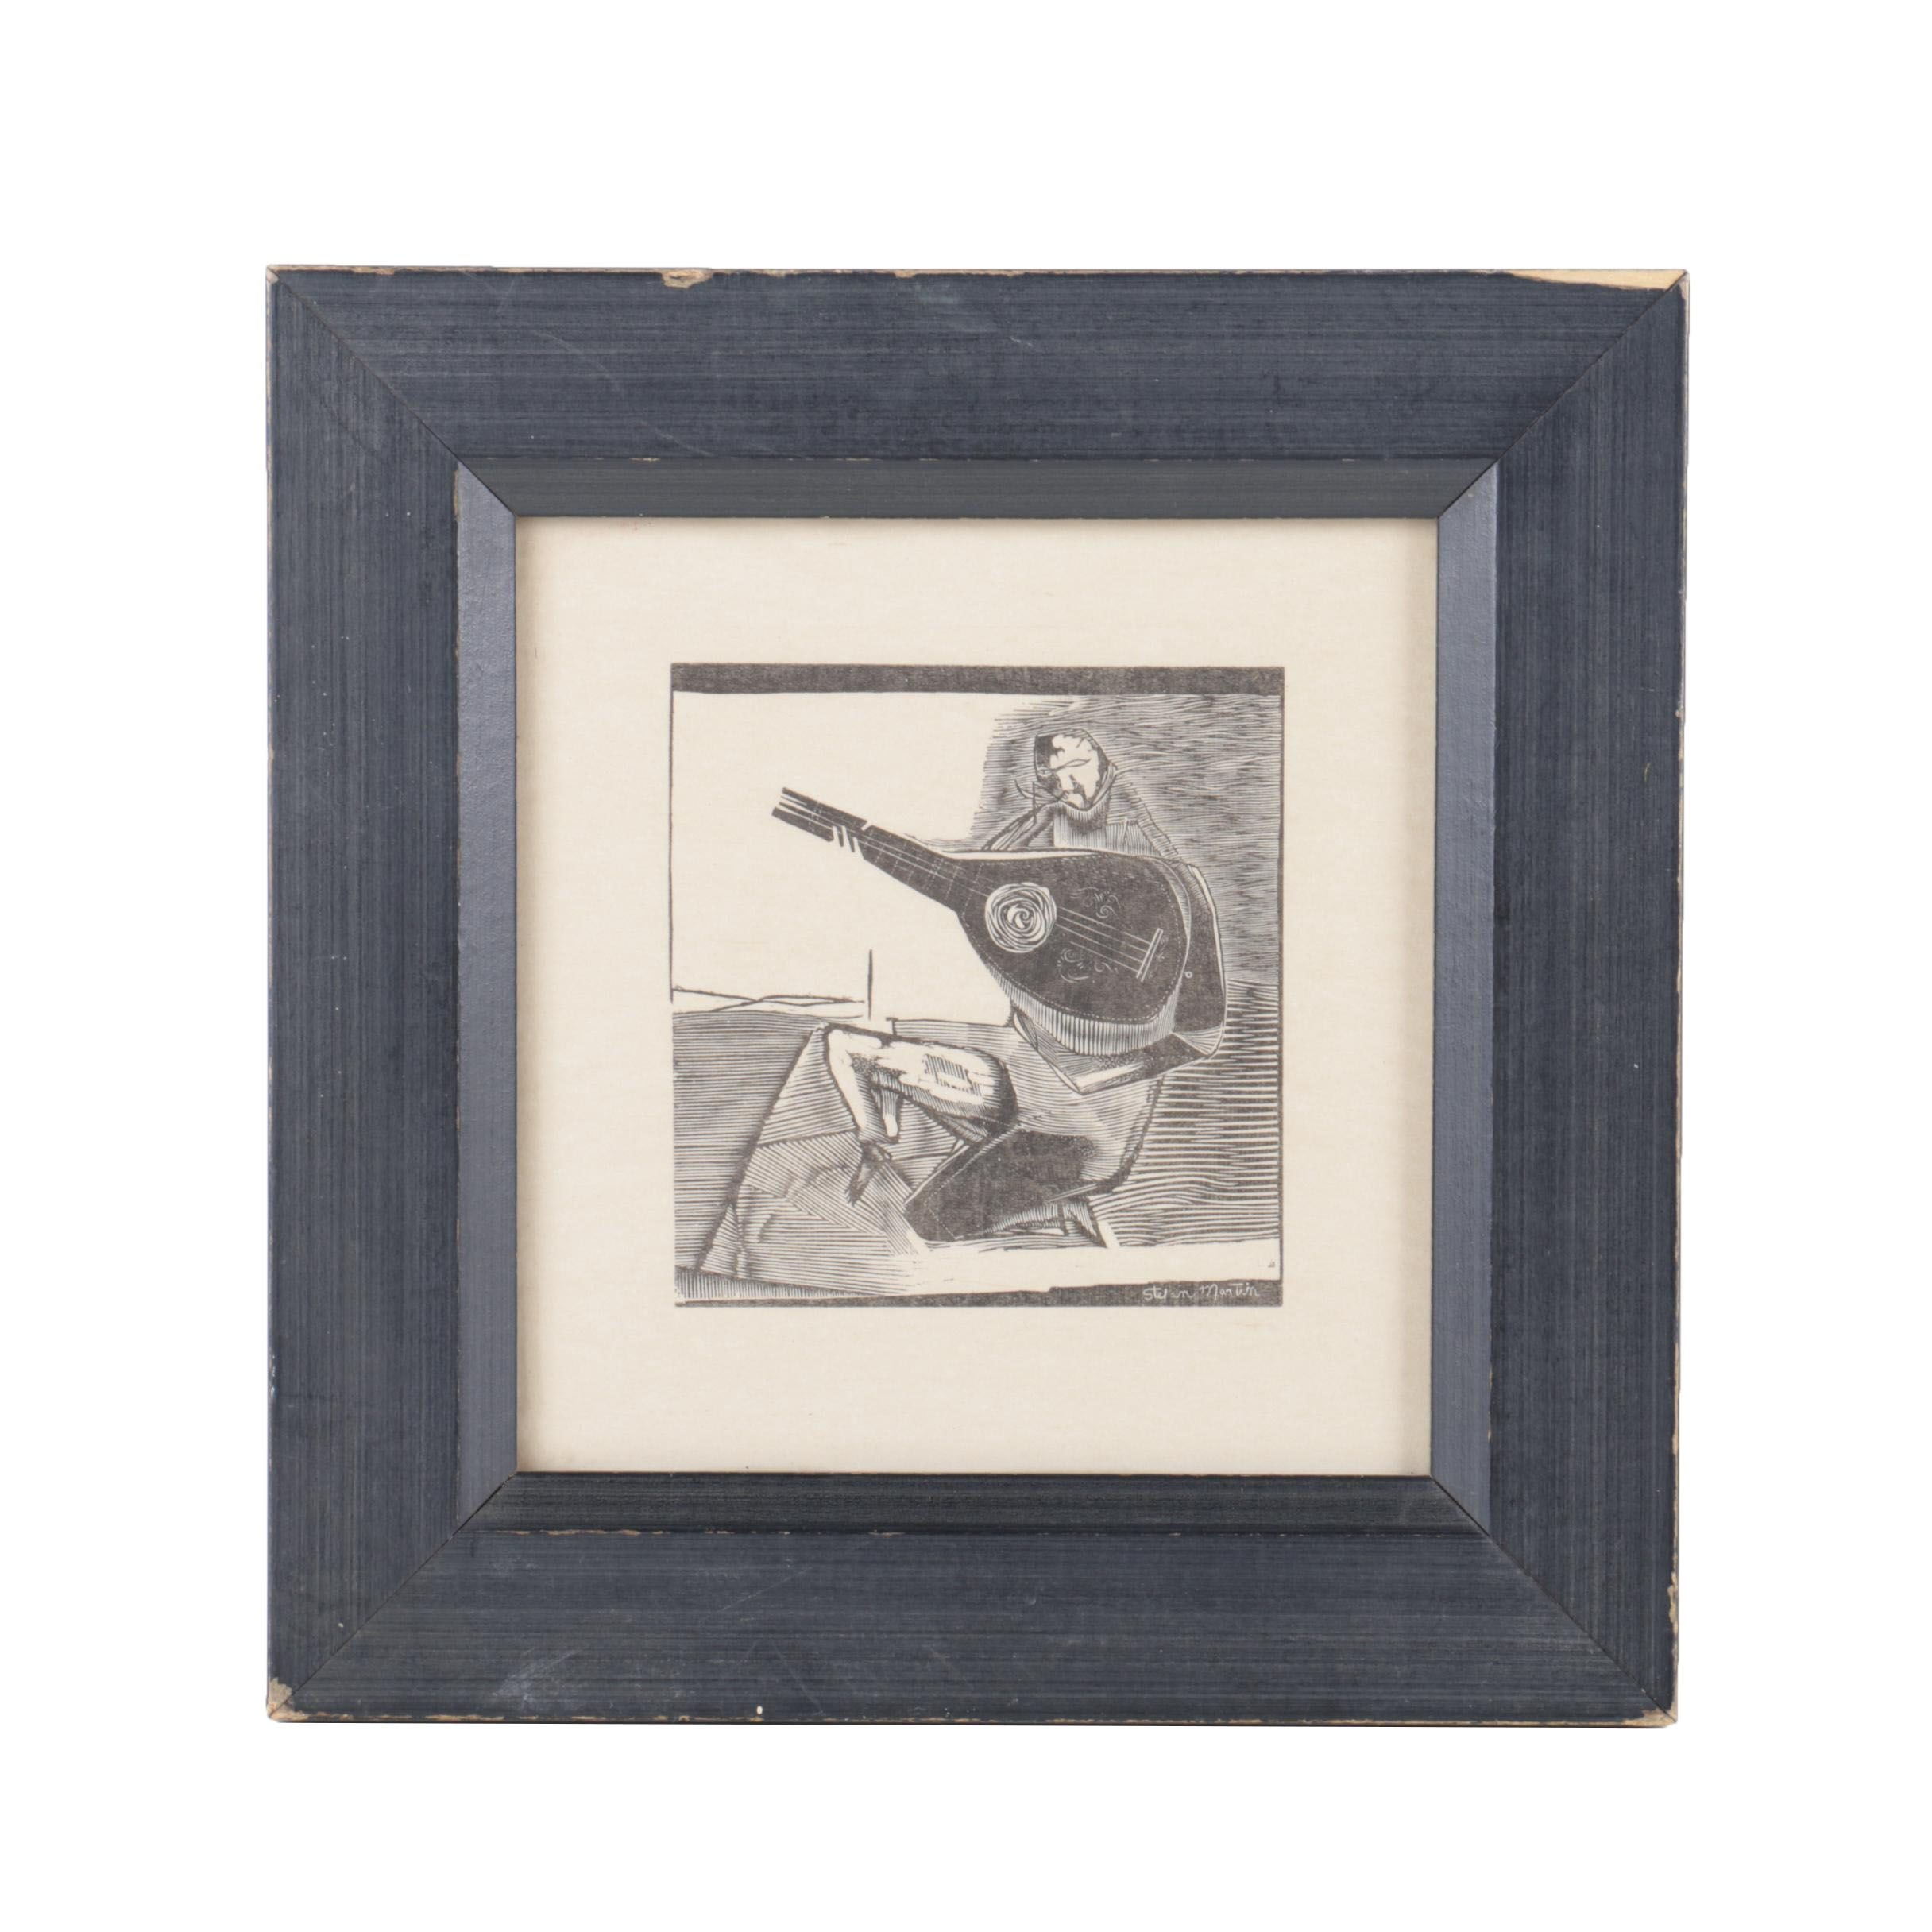 Stefan Martin Wood Engraving on Paper of Musician